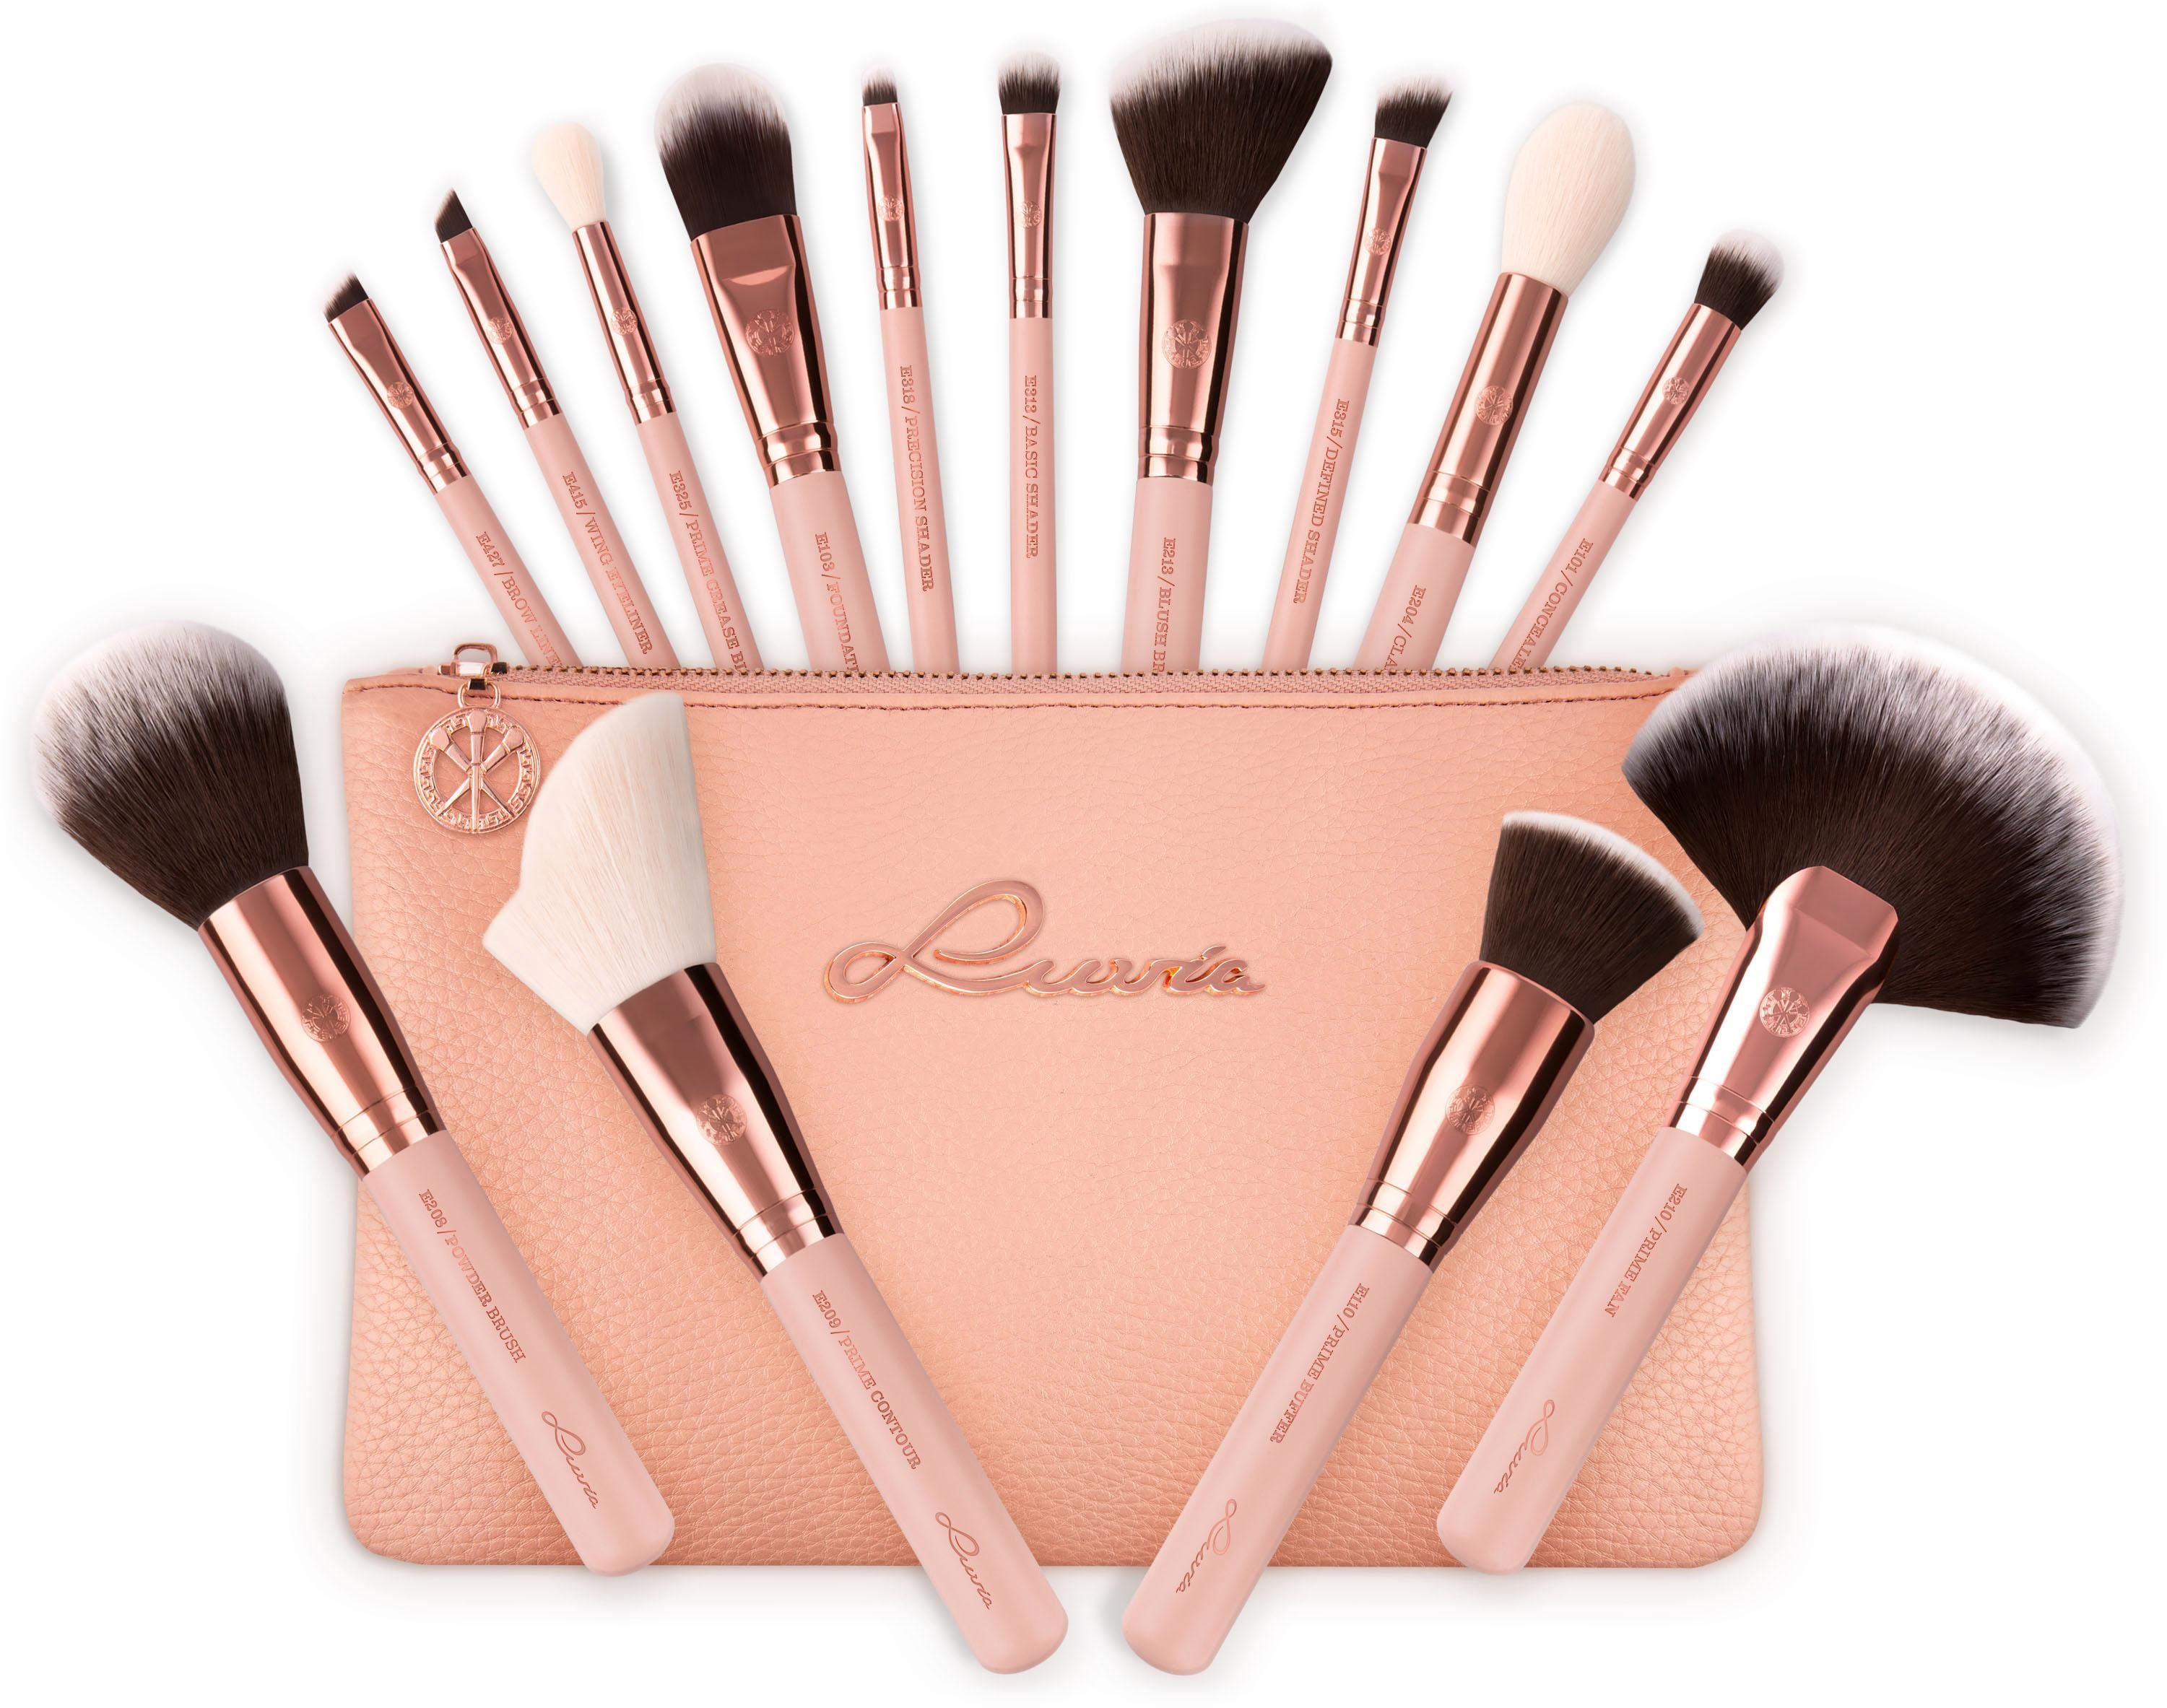 Luvia Cosmetics, »Essential Brushes - Rose Golden Vintage«, Veganes Make-Up Pinselset mit Pinseltasche